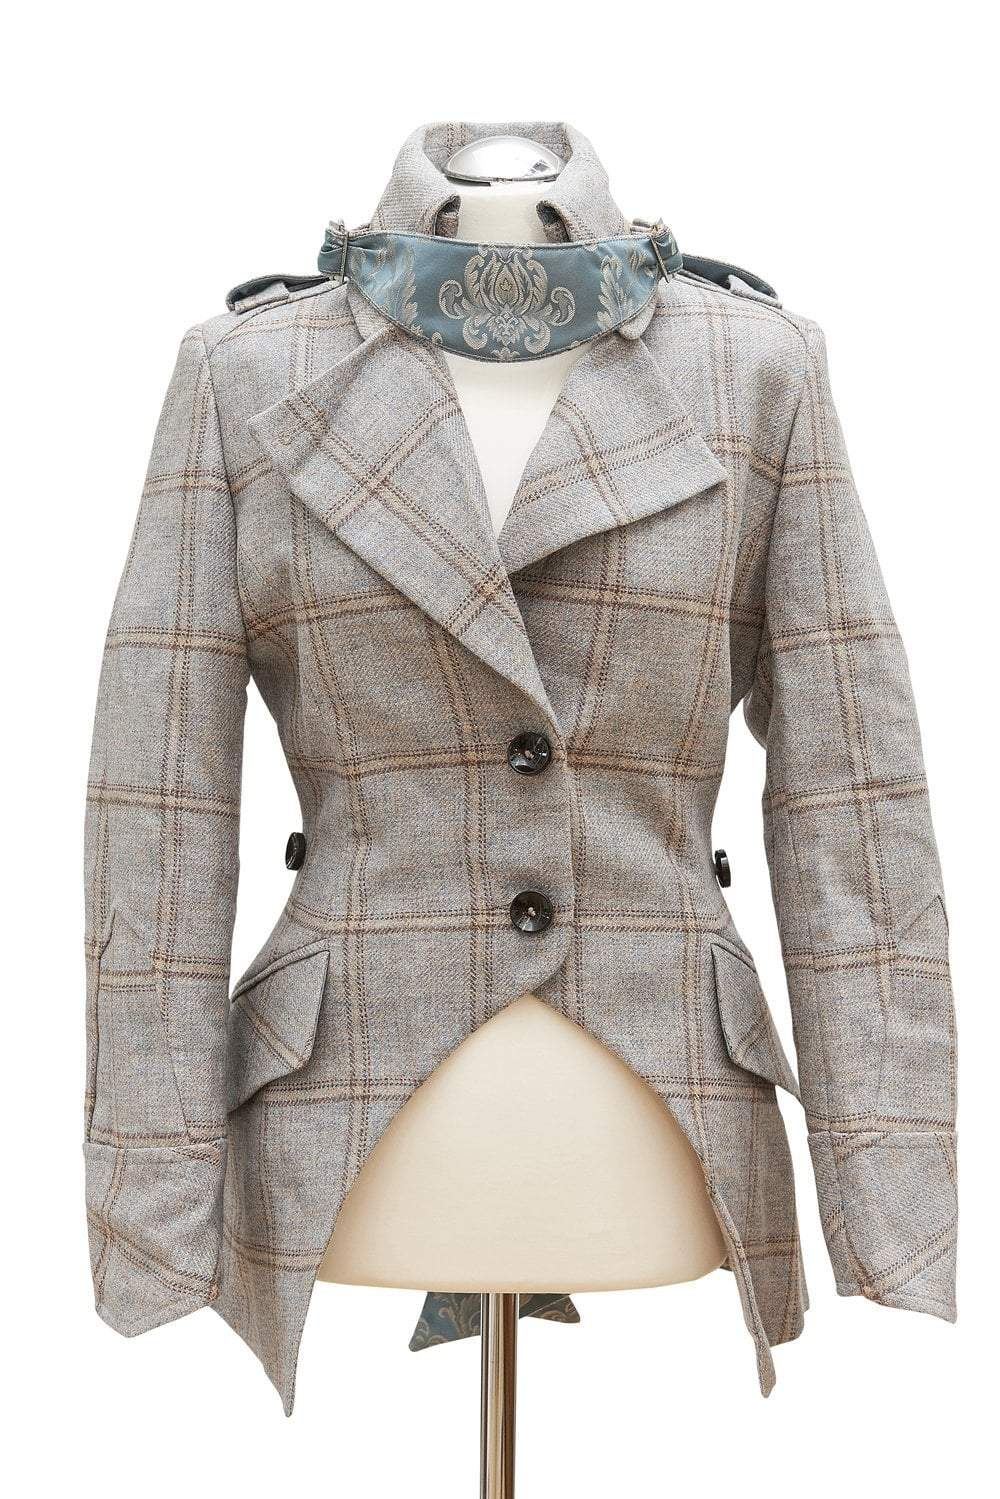 Egality Freedom coats and jackets Sandhurst Fishtail Jacket: duck egg tweed